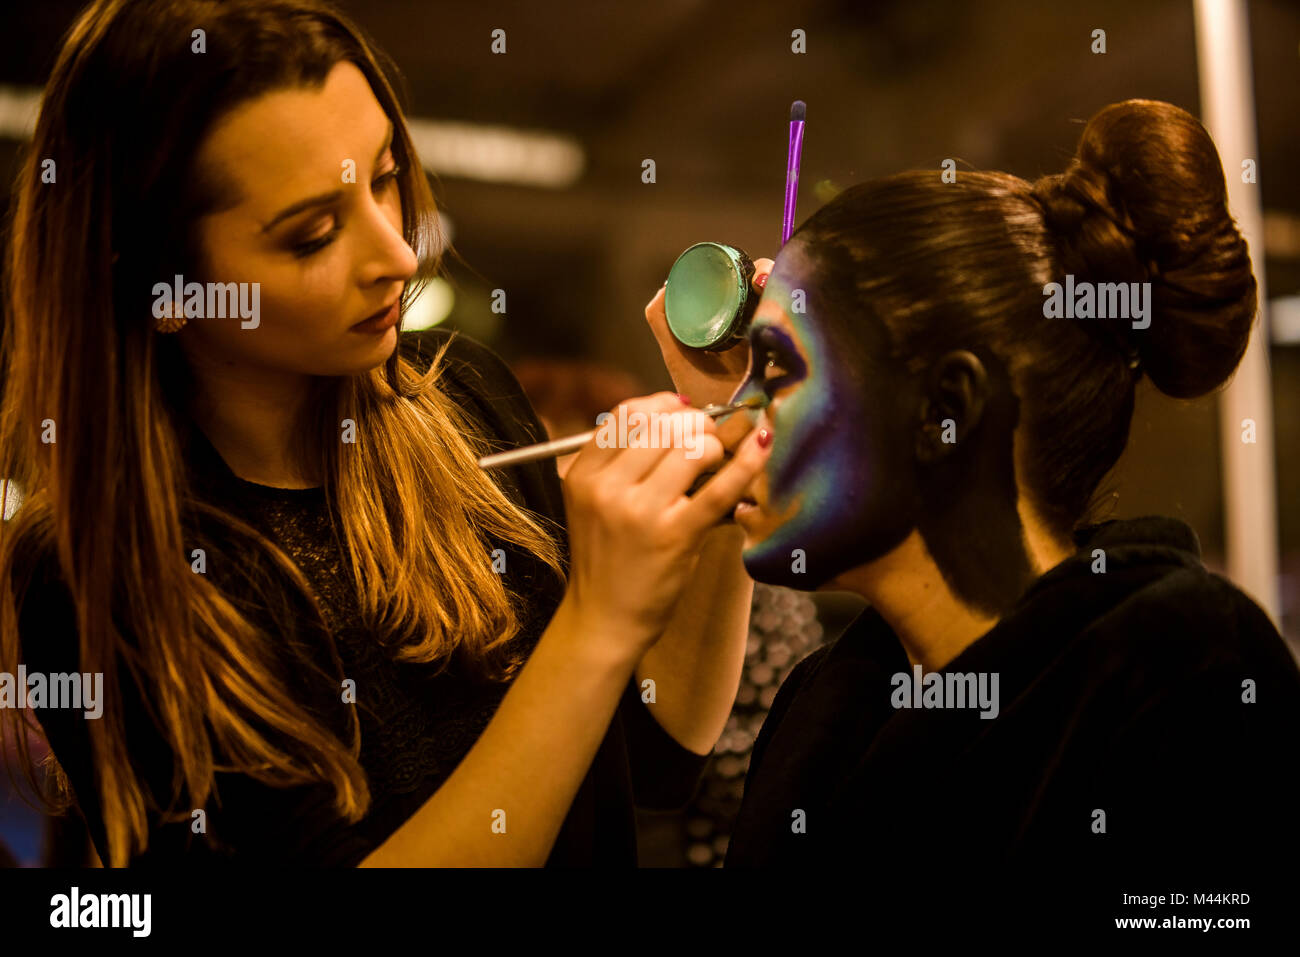 Cosmo Beauty 2018, most important fair of Hairdressing and cosmetics in Spain - Stock Image